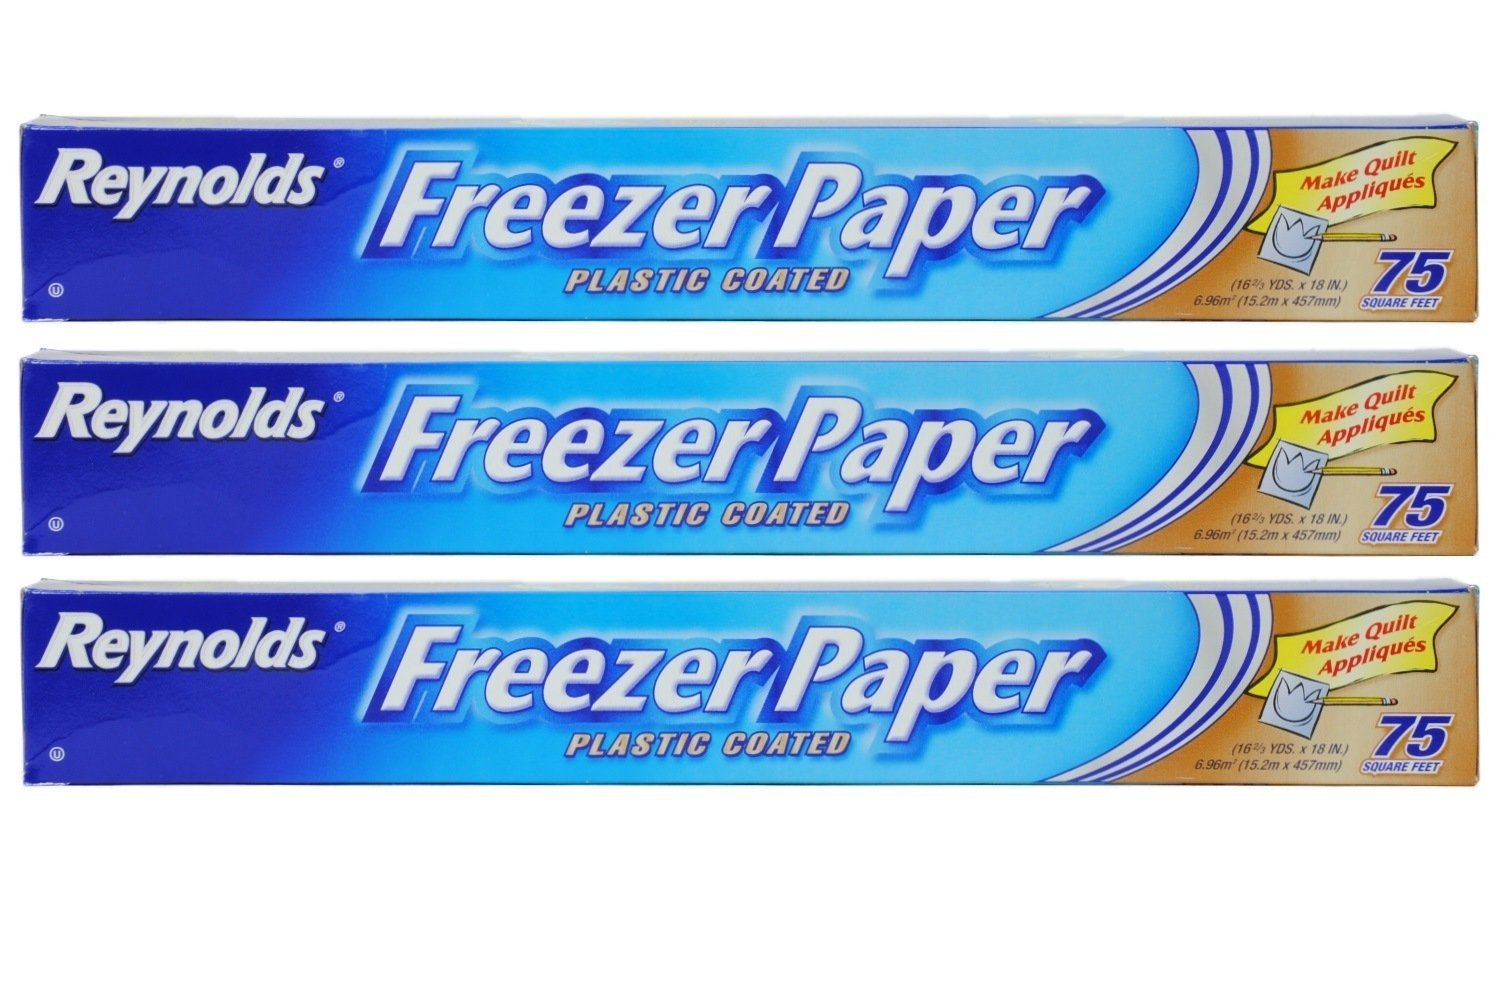 Reynolds Freezer Paper Plastic Coated 16 2/3 yds x 18in Roll (75sq ft.) Pack of 3